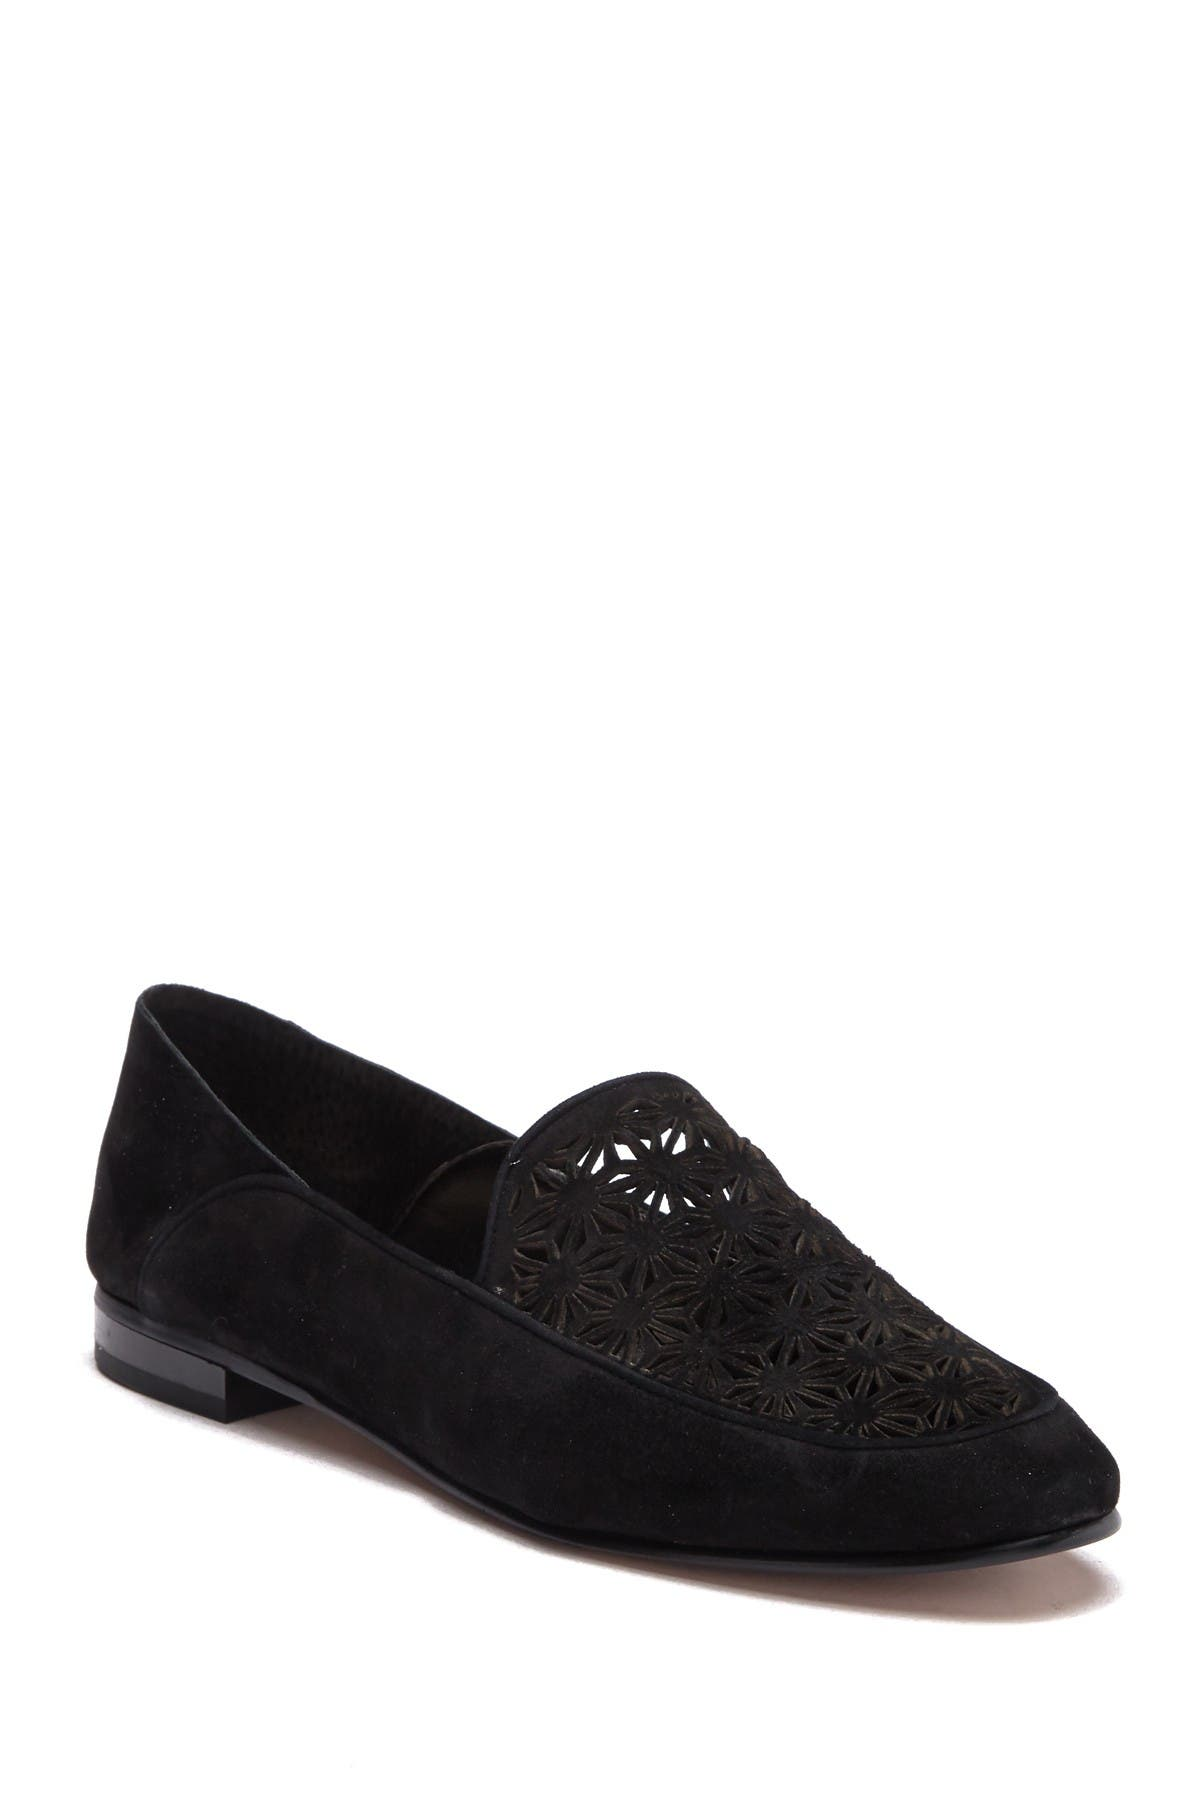 Image of Vince Camuto Marisel Perforated Loafer